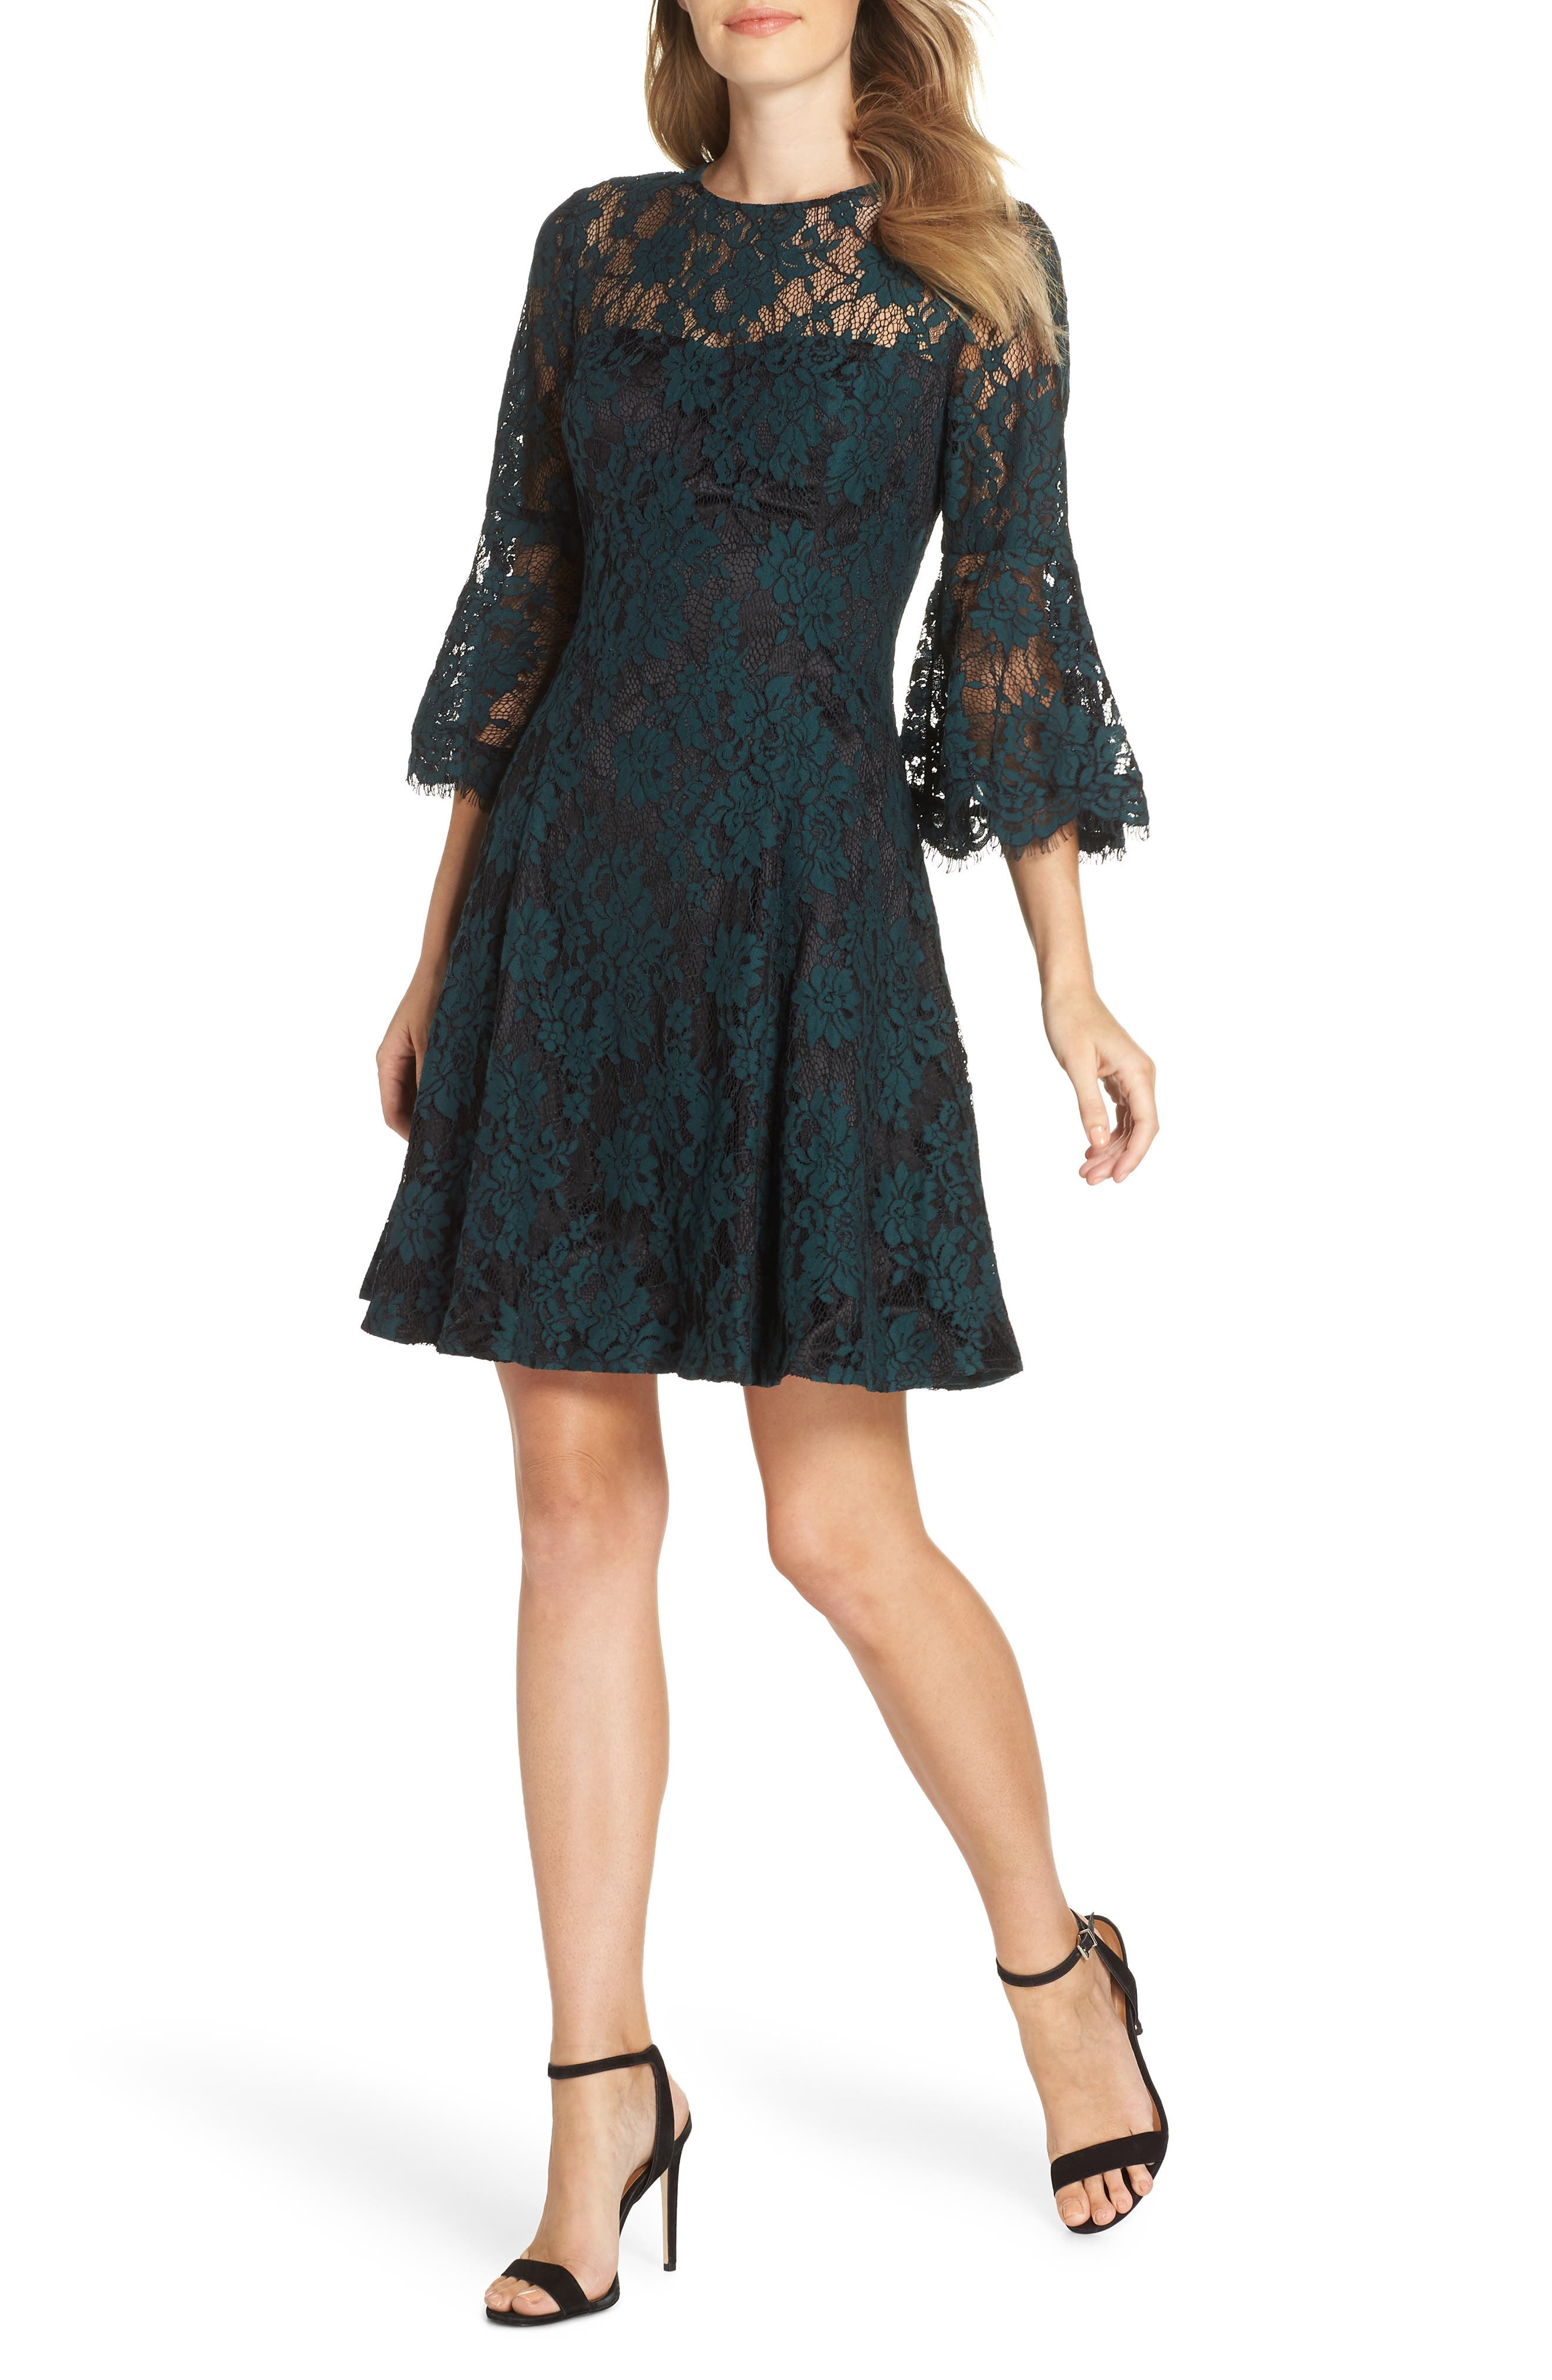 1960s Dresses | 60s Dresses Mod, Mini, Jackie O, Hippie Womens Eliza J Bell Sleeve Lace Dress $151.31 AT vintagedancer.com